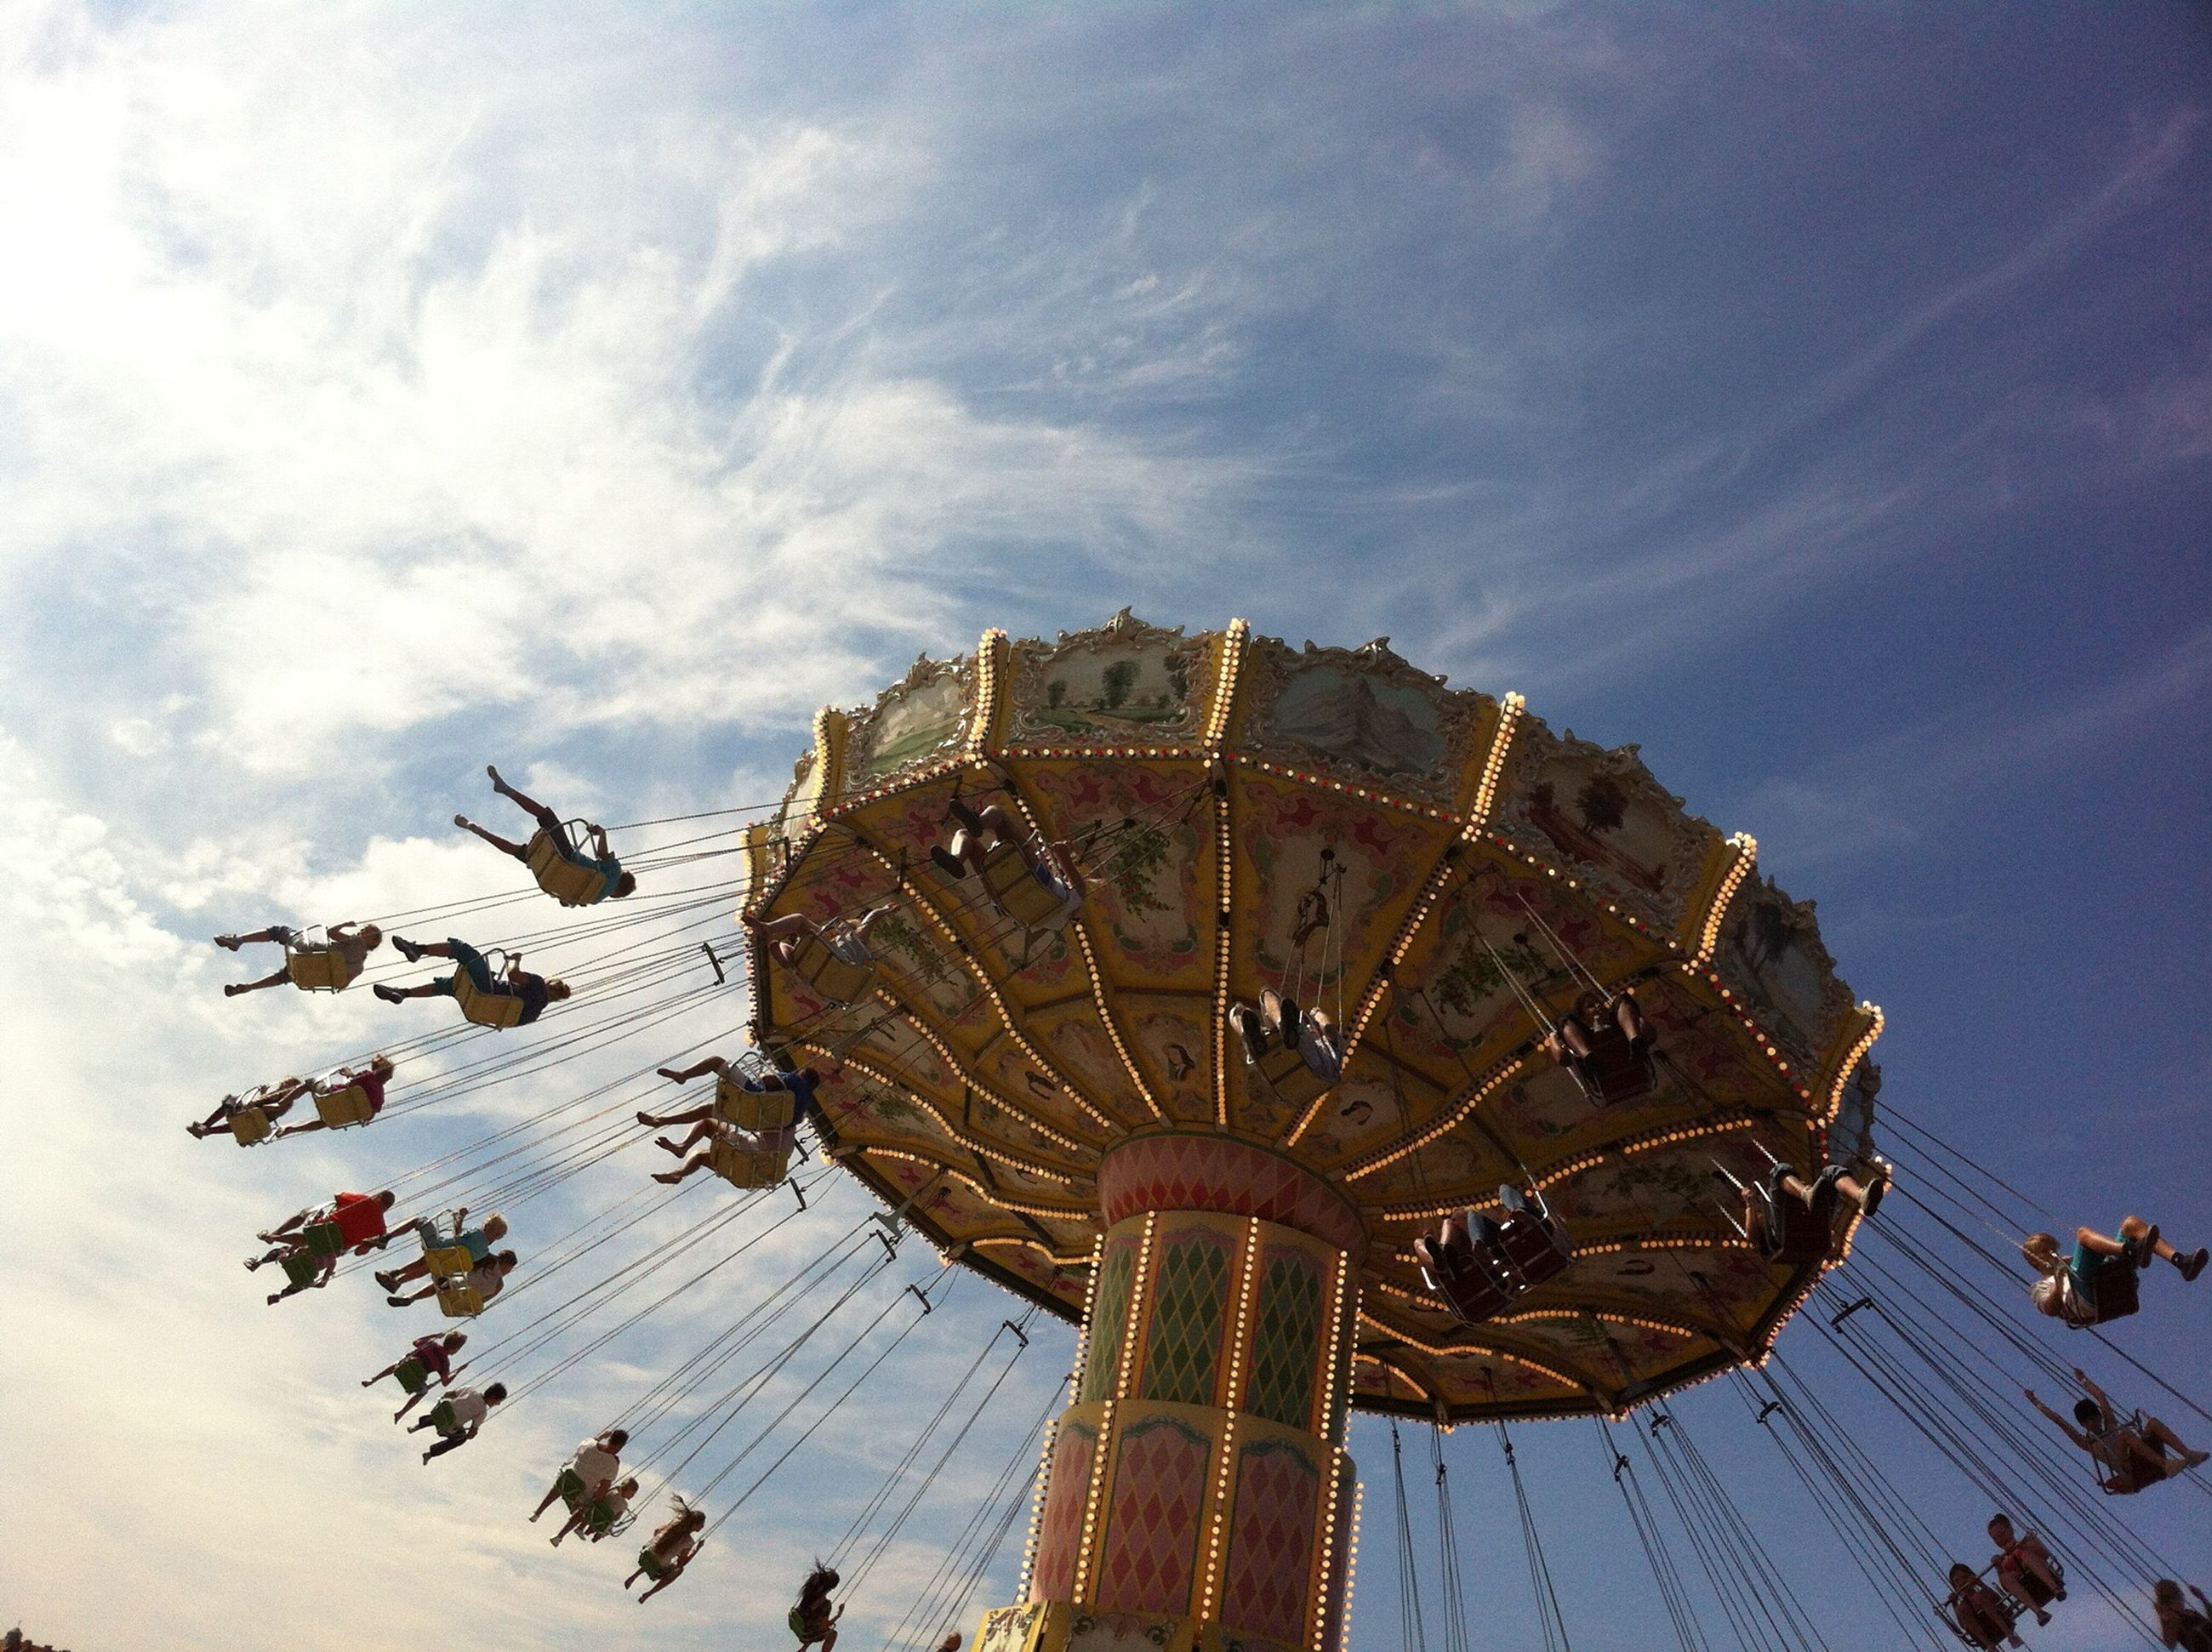 amusement park, sky, arts culture and entertainment, low angle view, leisure activity, amusement park ride, ferris wheel, outdoors, cloud - sky, no people, chain swing ride, day